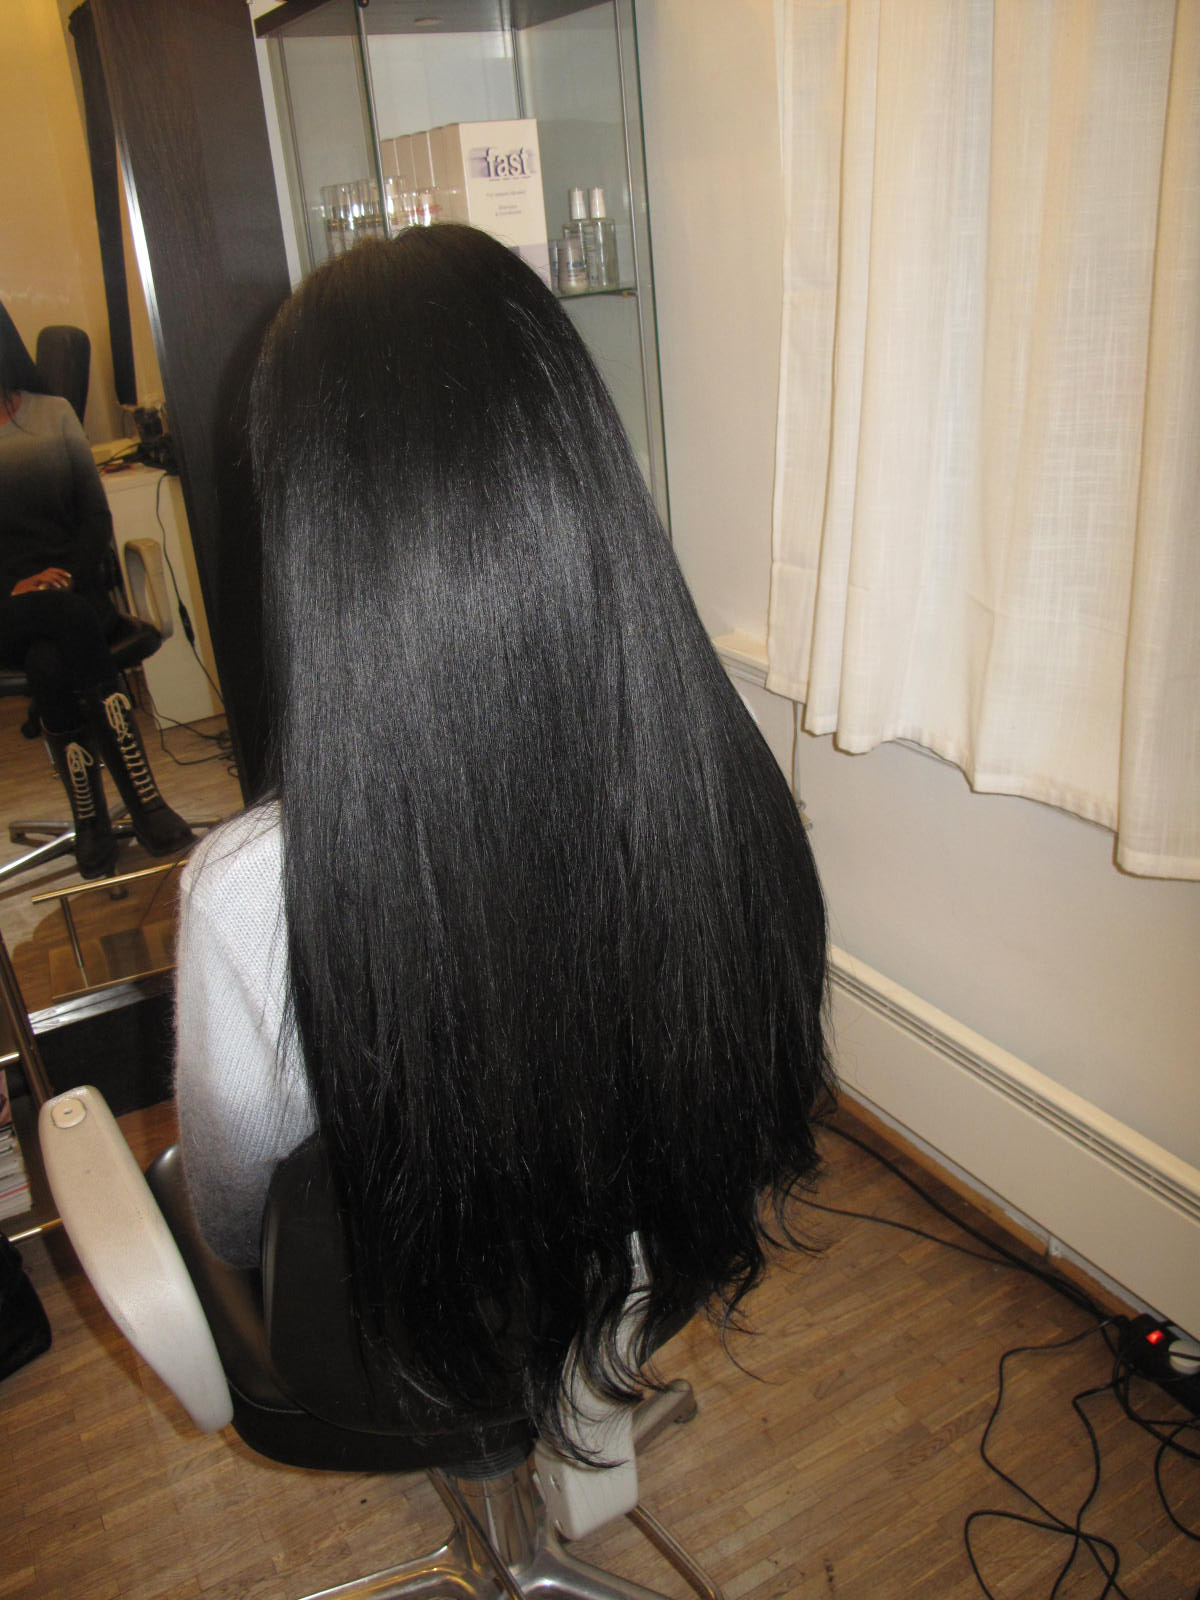 studio africa hair extensions 60 cm keratin extensions. Black Bedroom Furniture Sets. Home Design Ideas